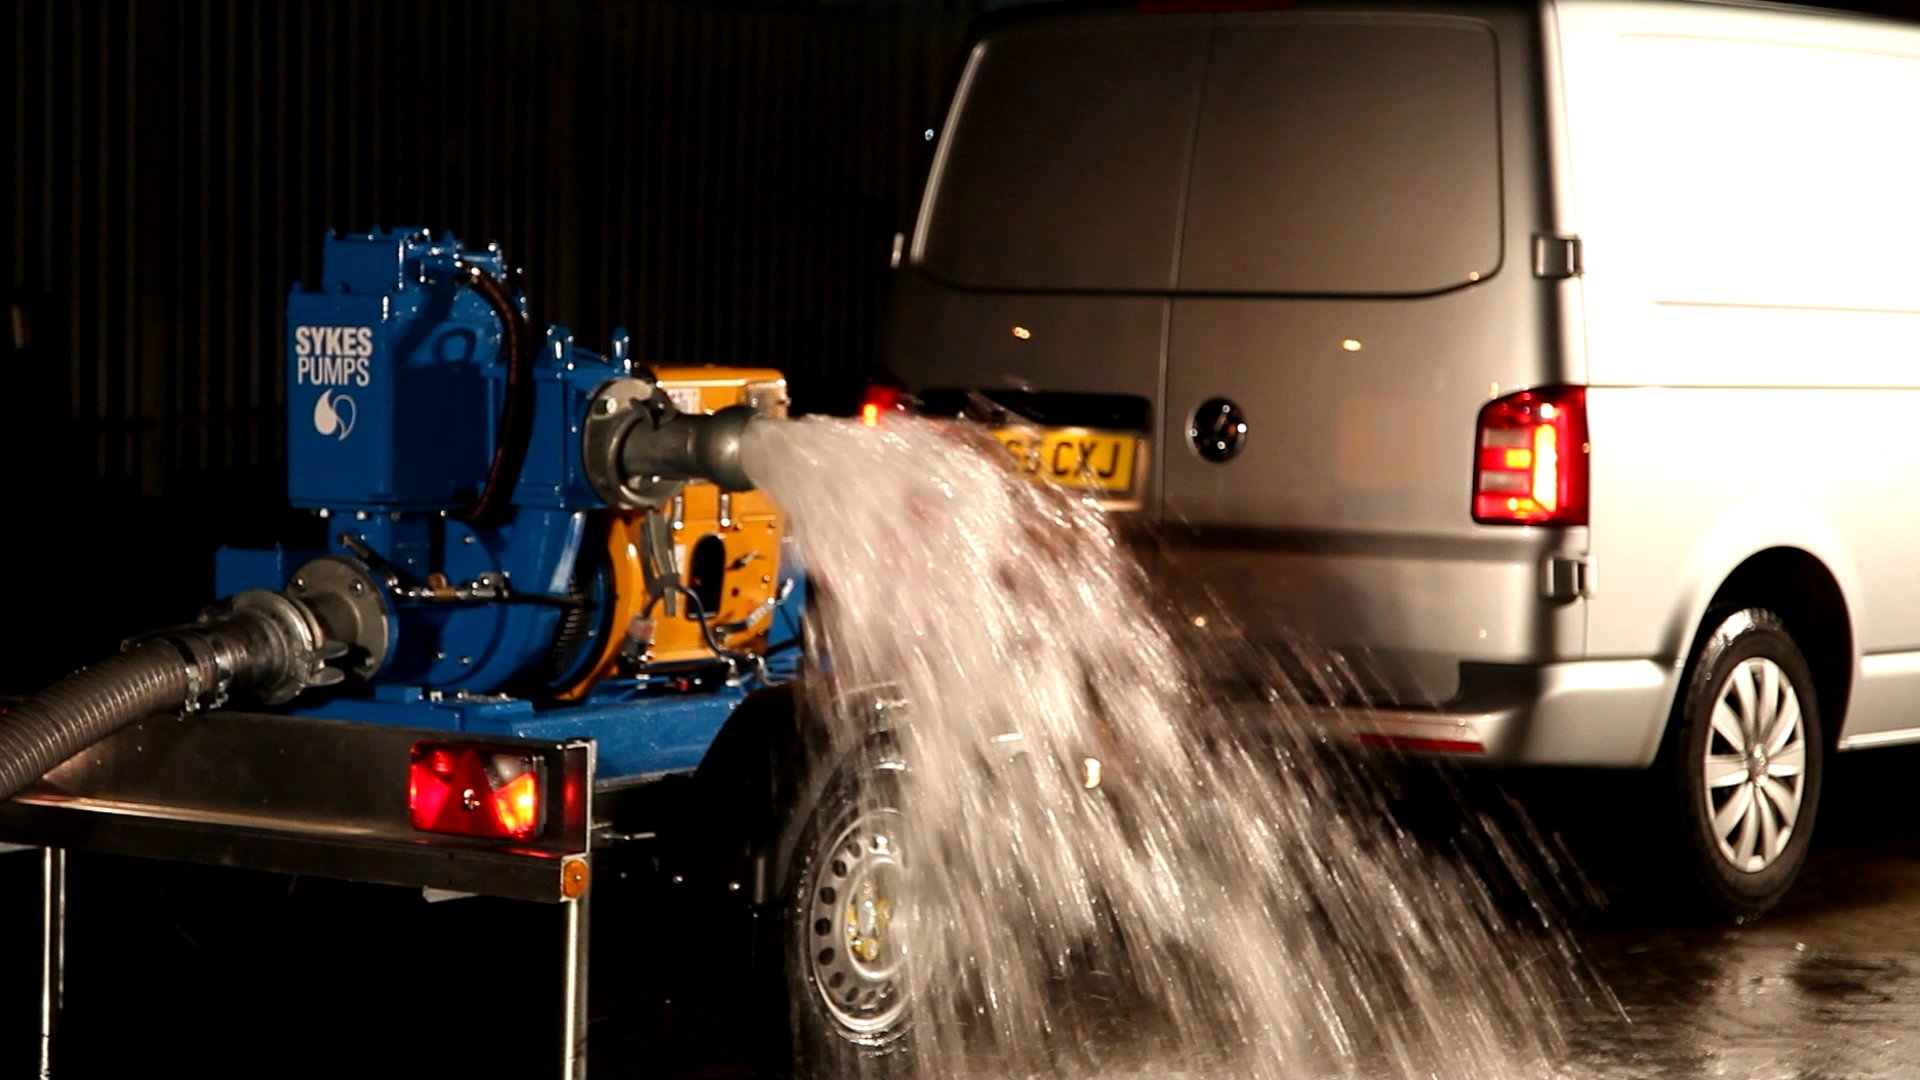 Sykes Pumps cut emergency reaction times with new innovation